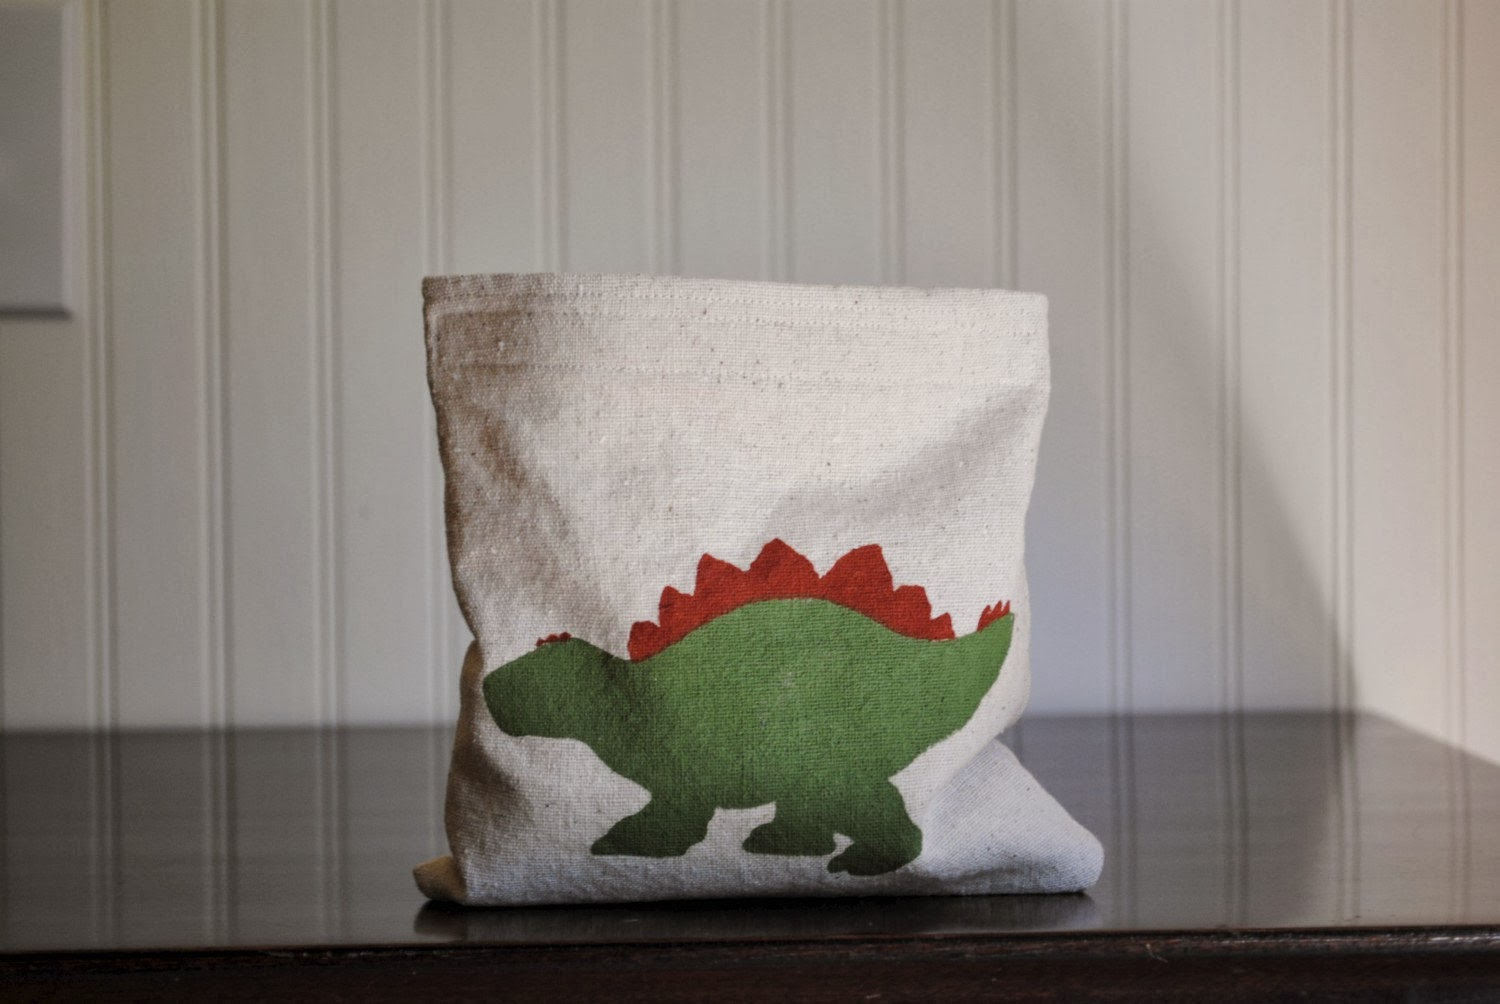 https://www.etsy.com/listing/49184142/clearance-reusable-sandwich-or-snack-bag